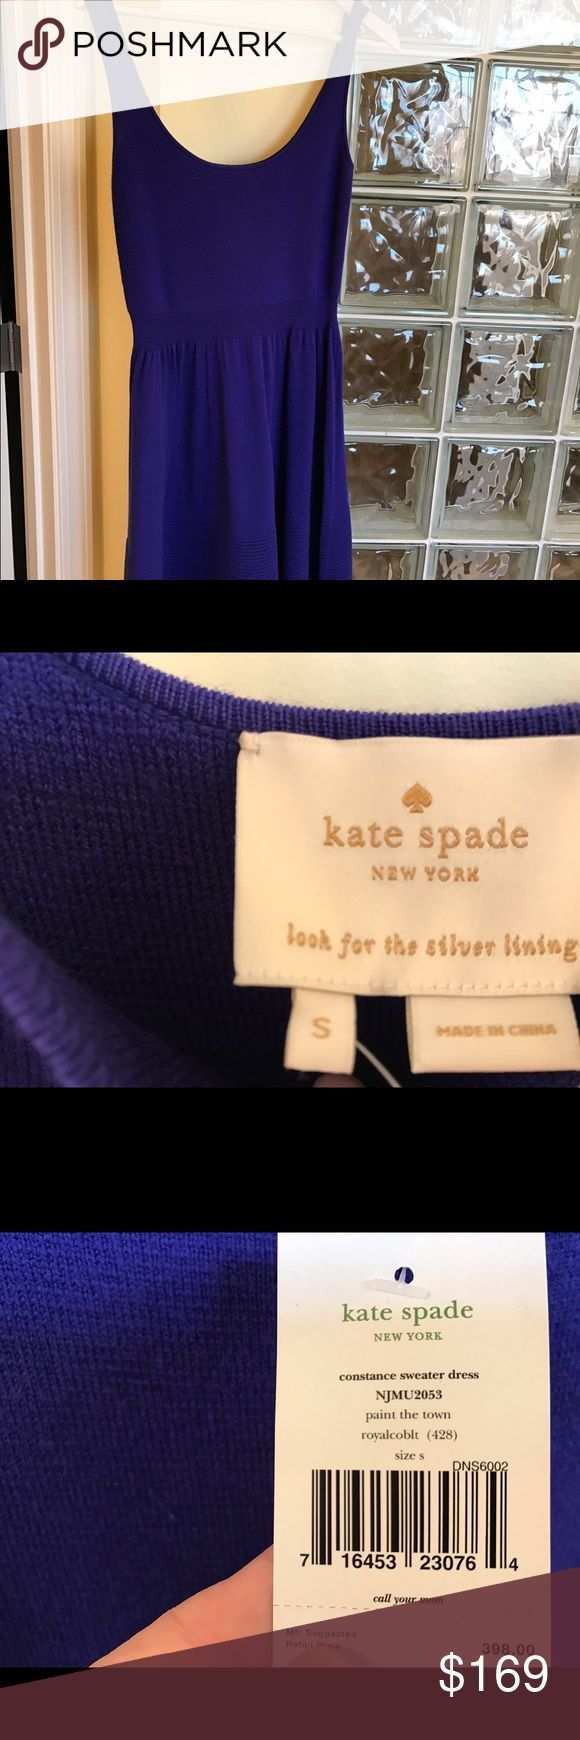 Awesome Sweater Dress Kate Spade royal blue sweater tank dress Kate Spade royal blue tank sweater dres... Check more at http://24myshop.tk/my-desires/sweater-dress-kate-spade-royal-blue-sweater-tank-dress-kate-spade-royal-blue-tank-sweater-dres/